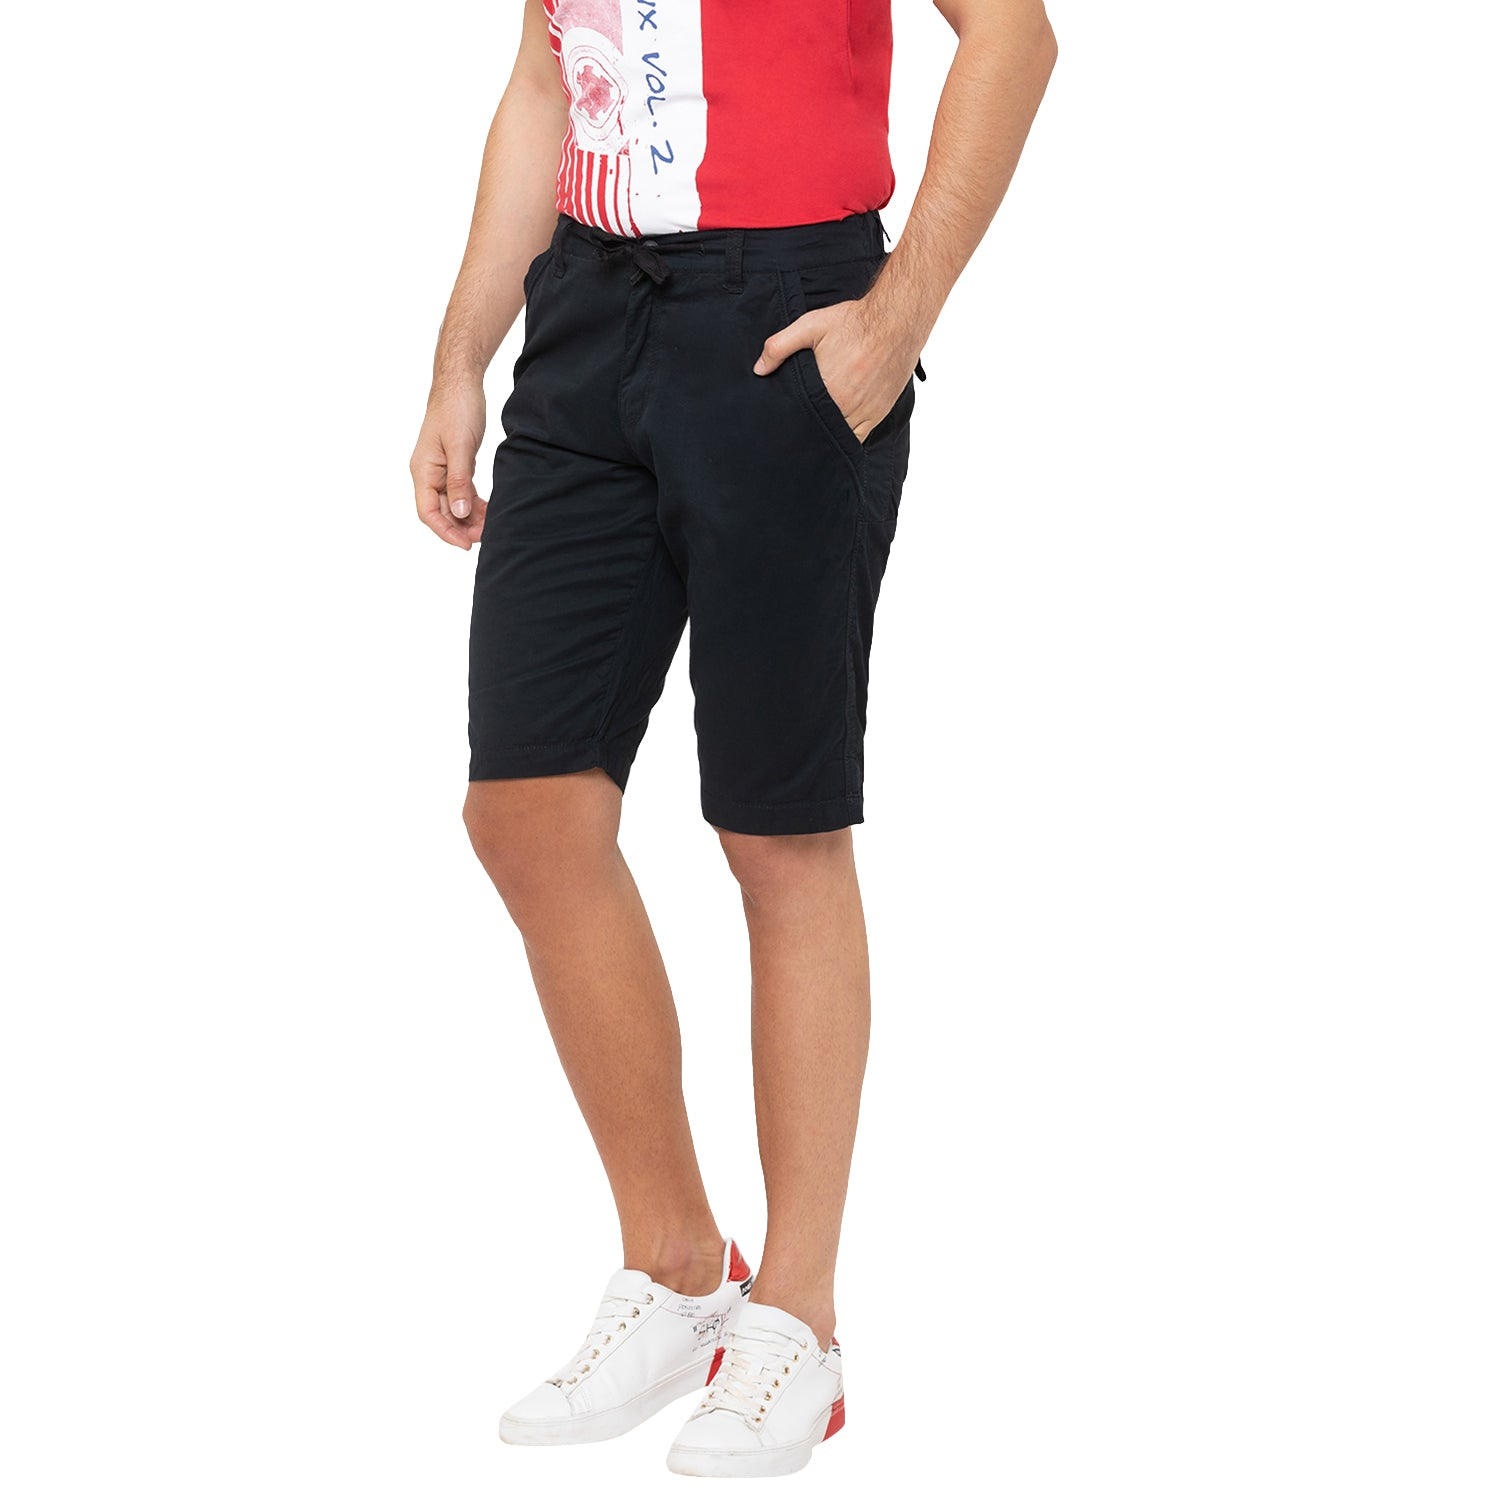 Globus Black Solid Shorts-6